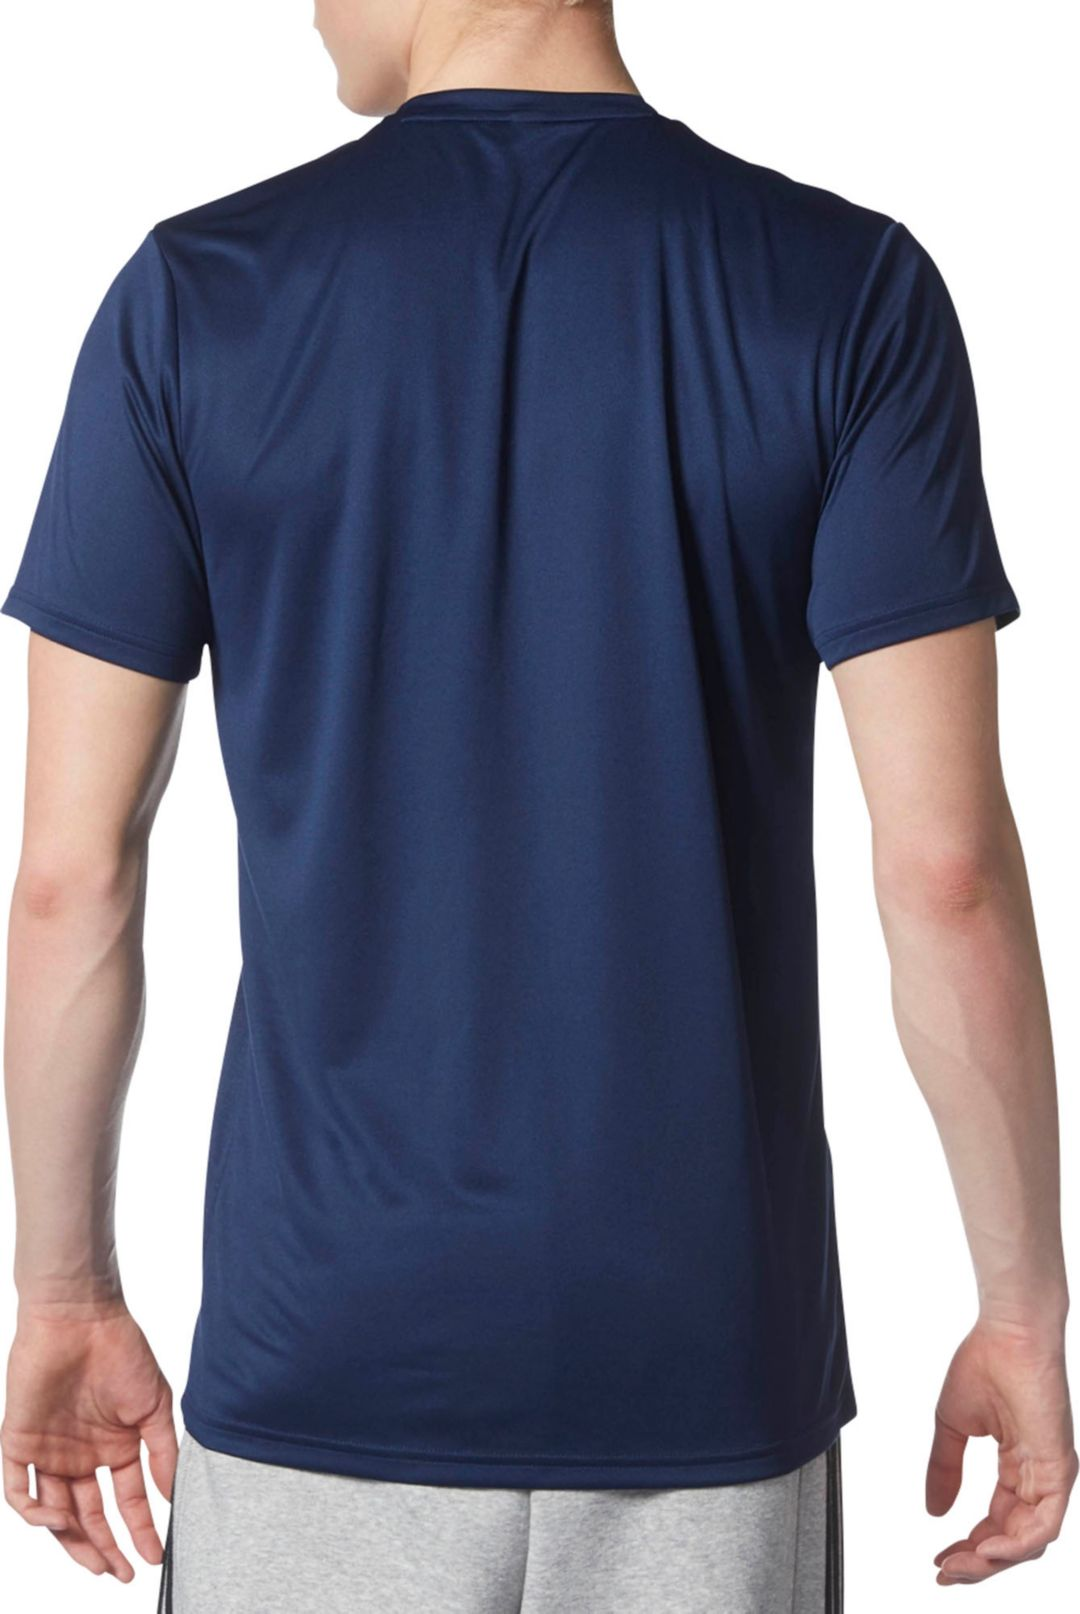 45c60258 adidas Men's Big and Tall Essential Tech T-Shirt | DICK'S Sporting Goods